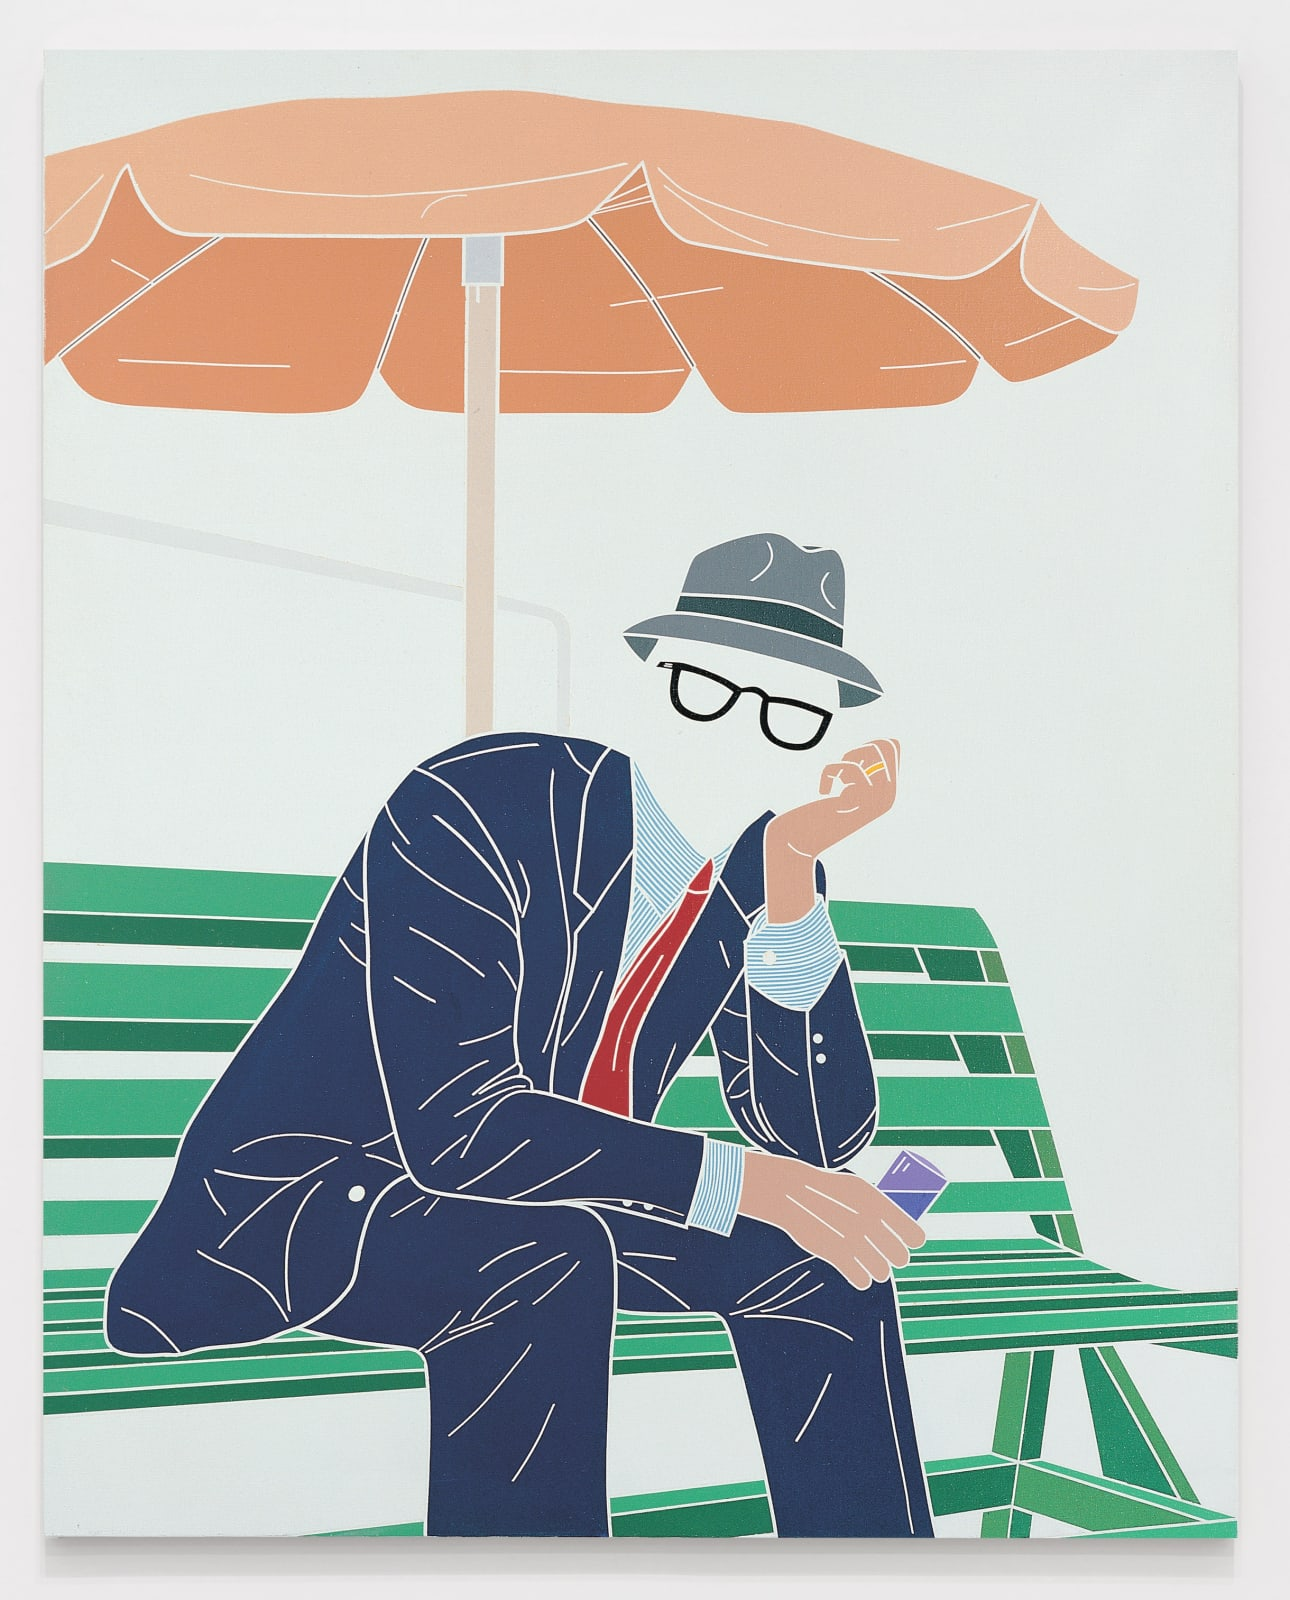 EMILIO TADINI, L'uomo dell'organizzazione. Weekend al parco (The Man of the Organisation. Weekend at the Park), 1968 Acrylic on canvas 162 x 130 cm 63 ¾ x 51 ⅛ inches